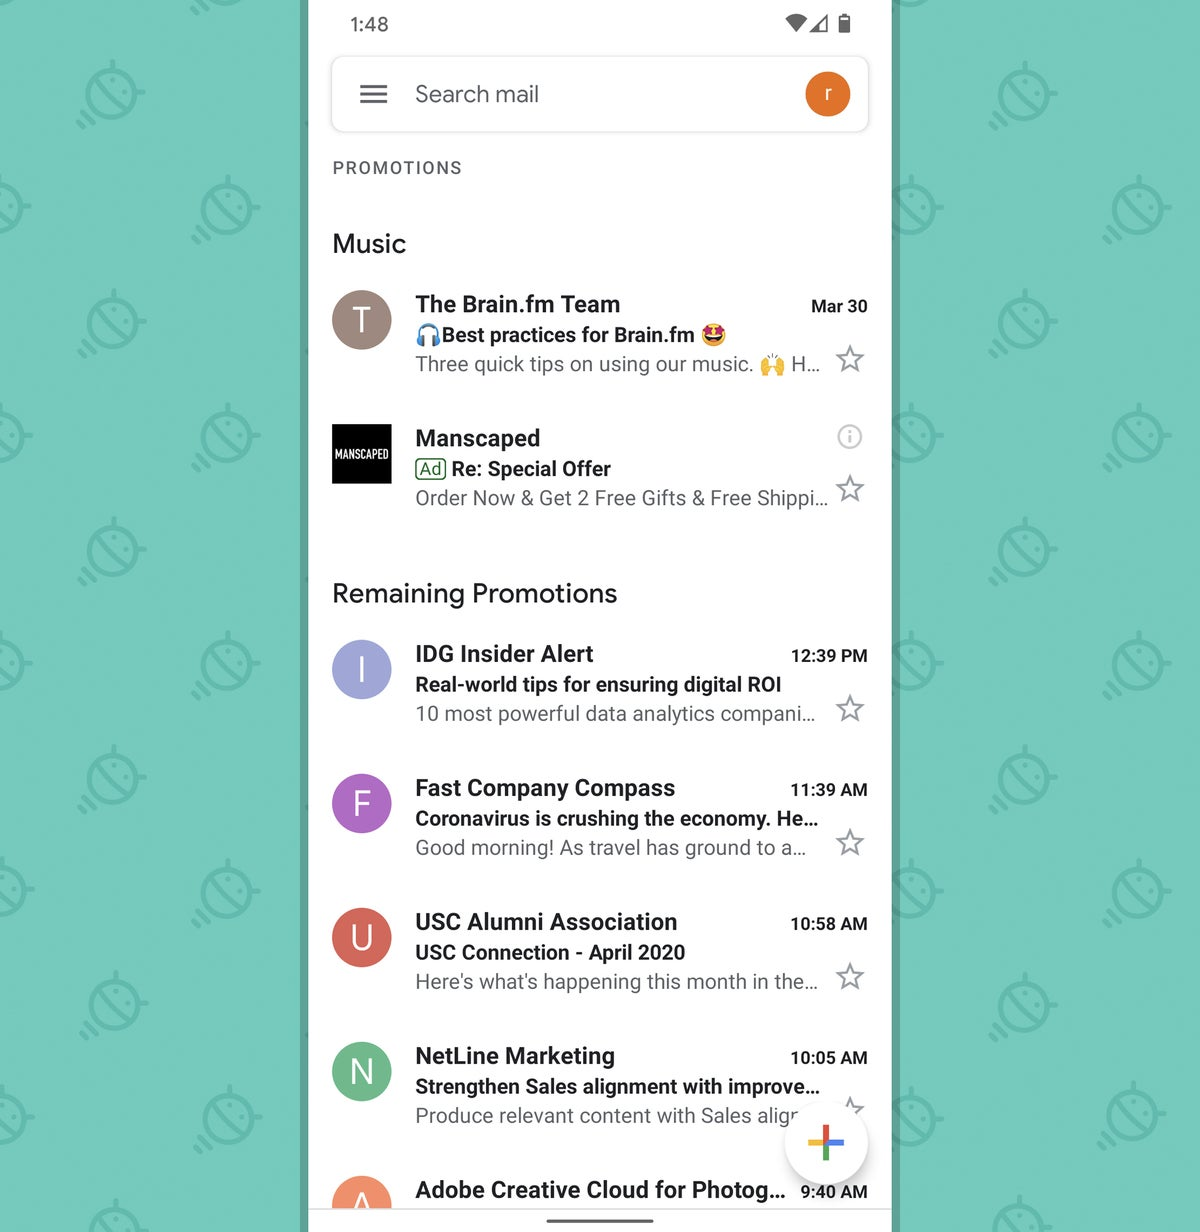 Gmail app for Android: promotions